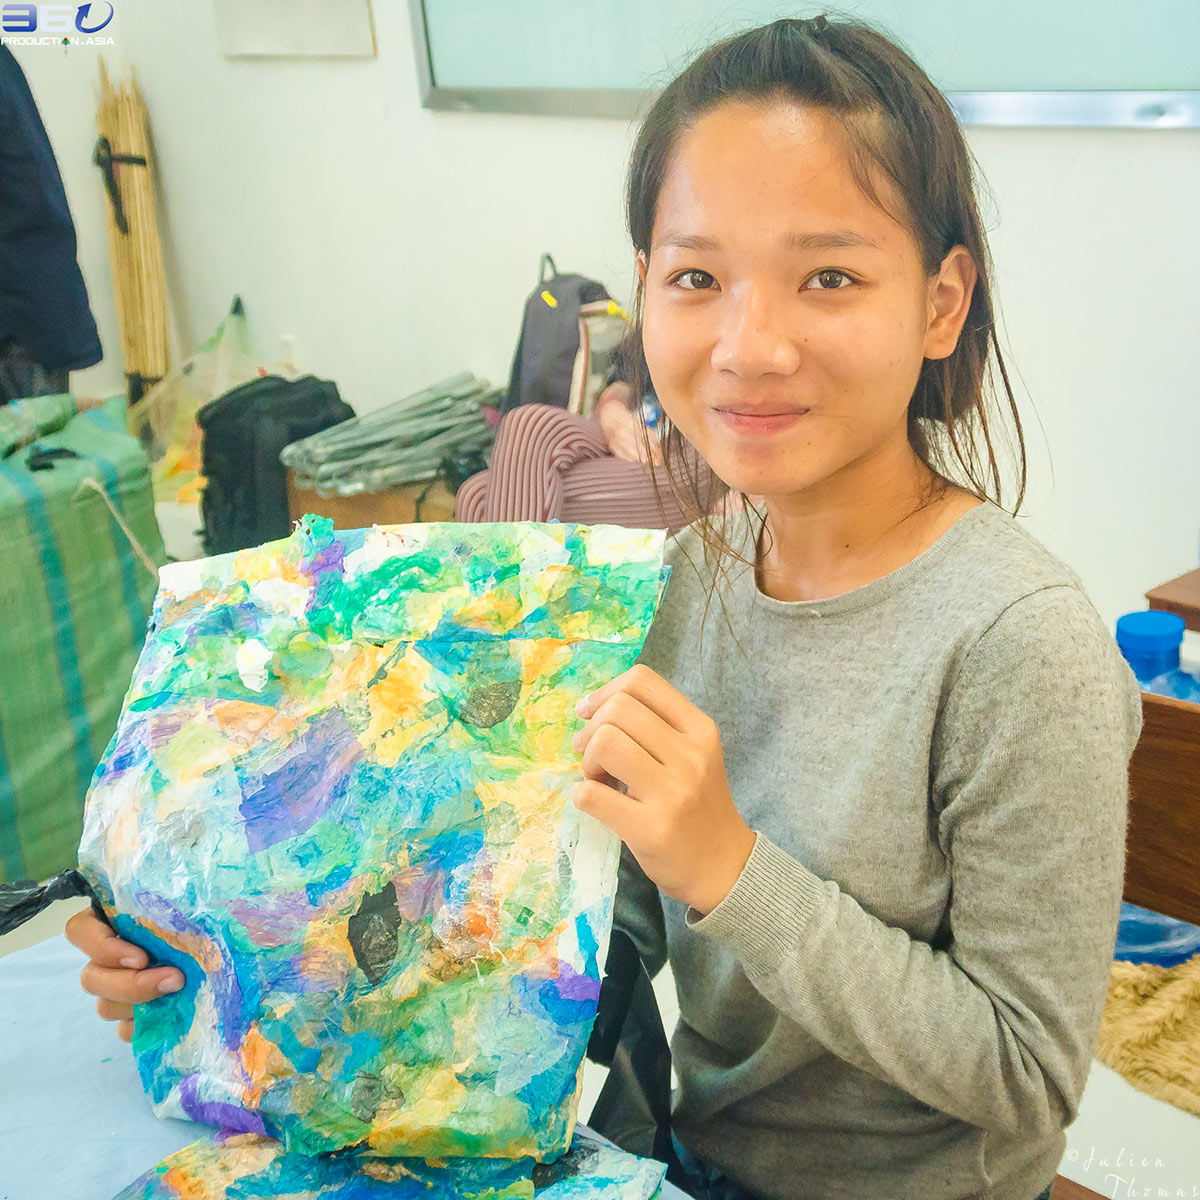 Cambodian girl is showing her homemade and multicolor purse crafted from recycled plastic waste material during a craft and ecological course in Phnom Penh.